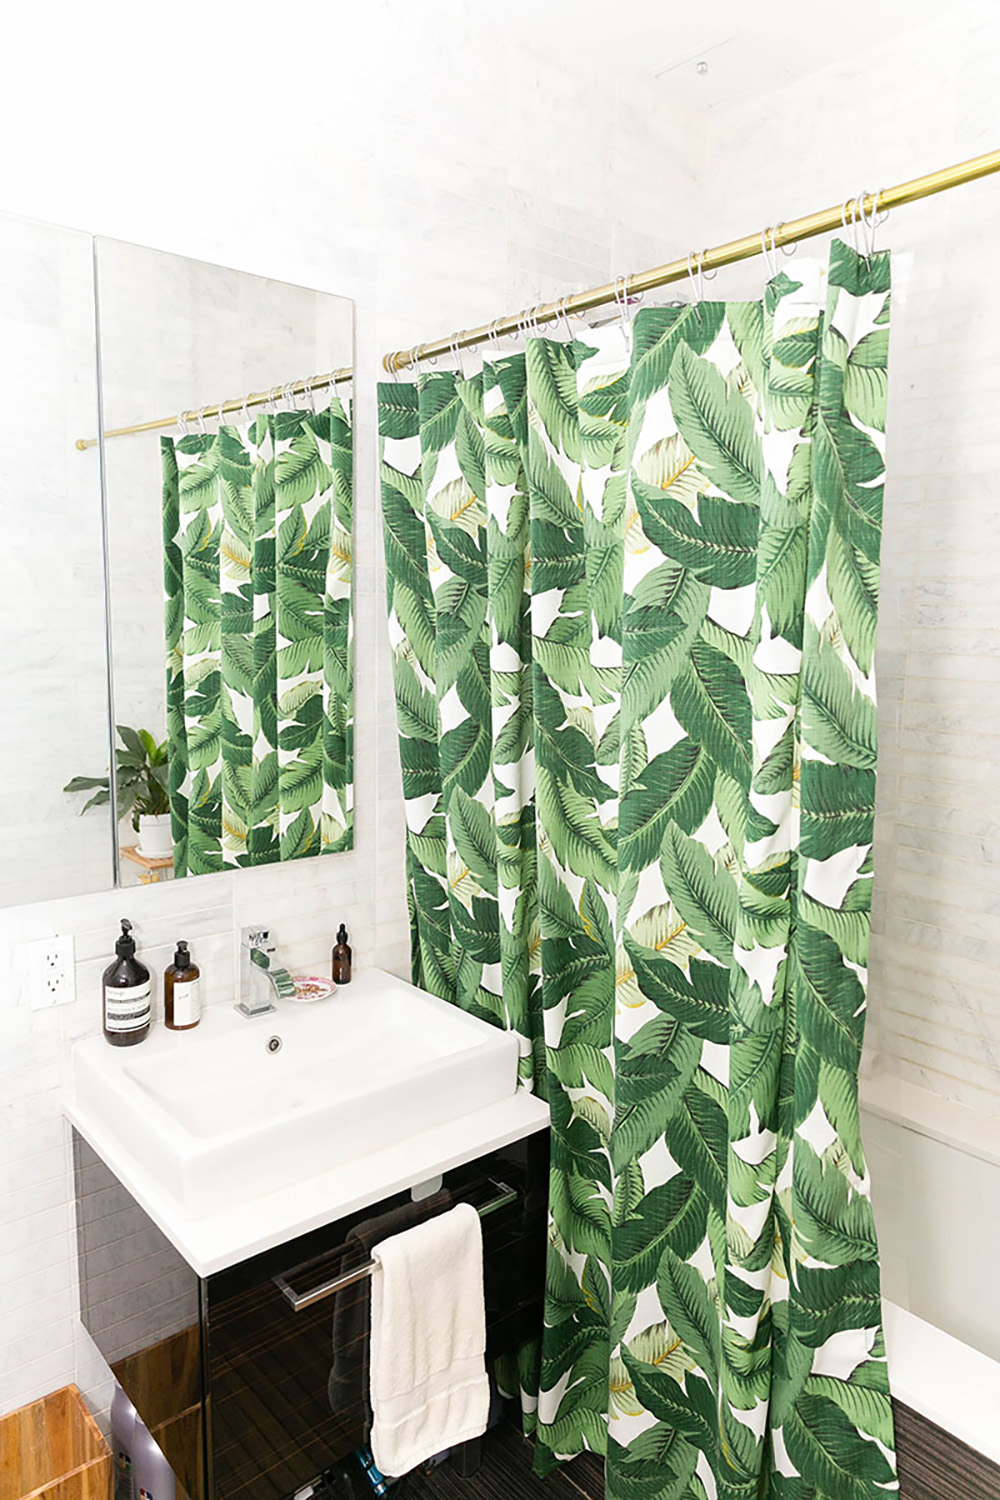 Tropical plant banana palm leaves bath curtain - Bathroom with banana leaves- Transform your home into a tropical paradise | Aliz's Wonderland